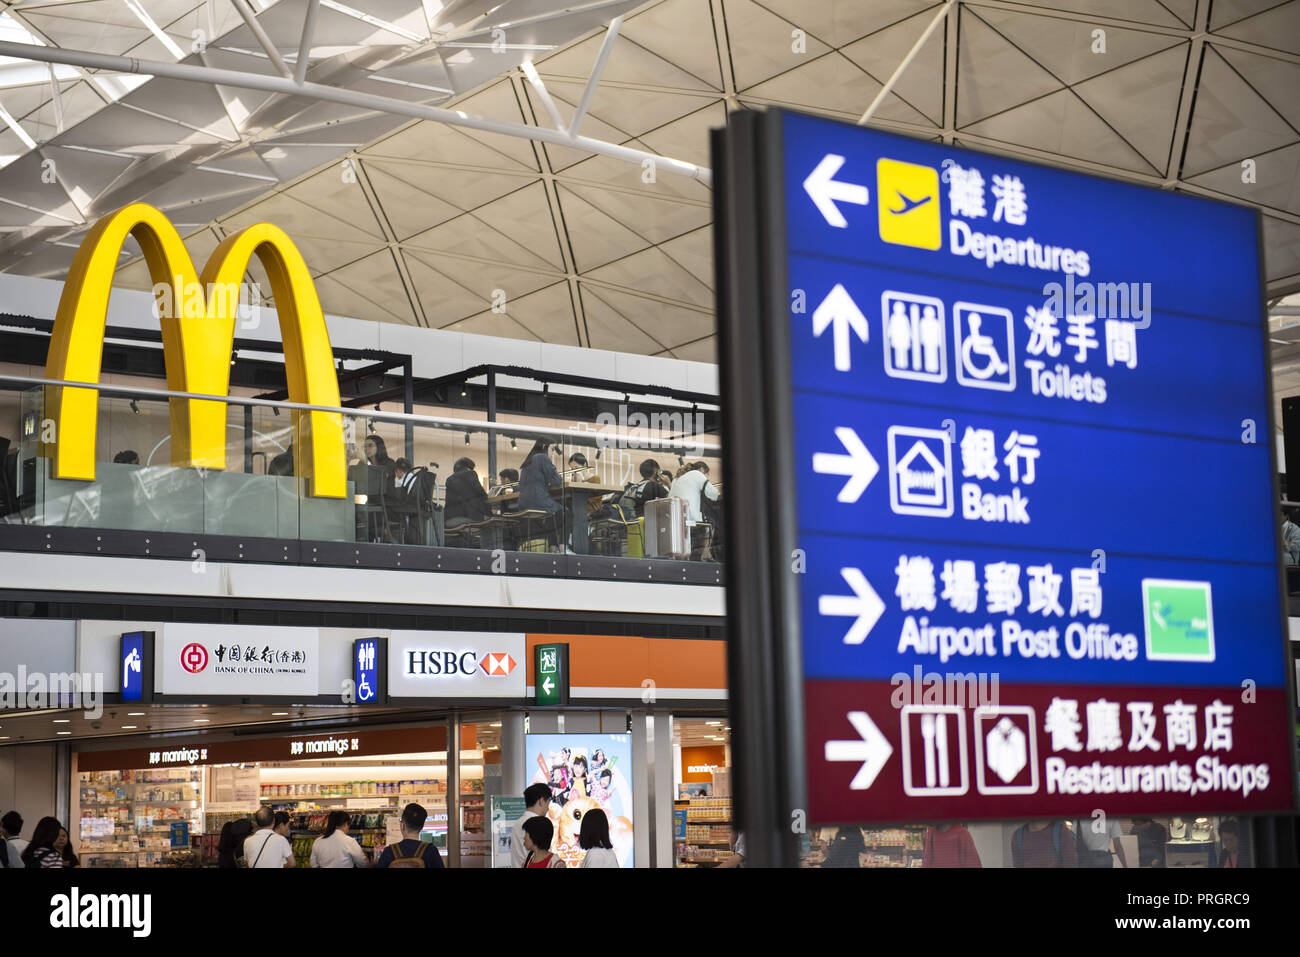 Chek Lap Kok island, Hong Kong. 28th Sep, 2018. At the back, a large McDonald's restaurant logo is seen and at the front, a sign post at Hong Kong terminal 1 airport giving direction where the departure hall, toilets, police office are located Credit: Miguel Candela/SOPA Images/ZUMA Wire/Alamy Live News - Stock Image